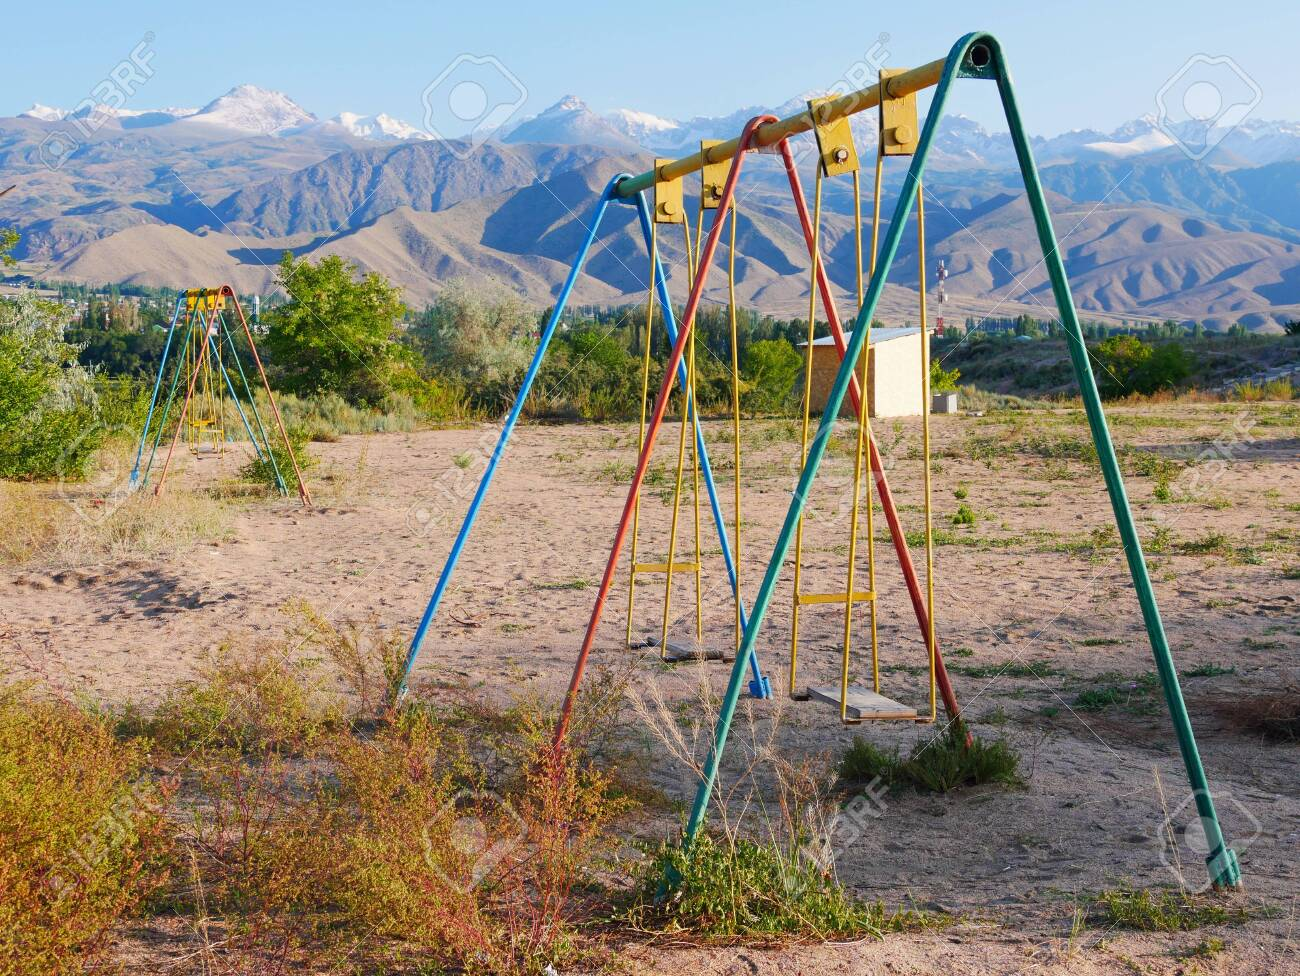 Swing On Abandoned Playground In Kyrgyzstan Stock Photo Picture And Royalty Free Image Image 132484419